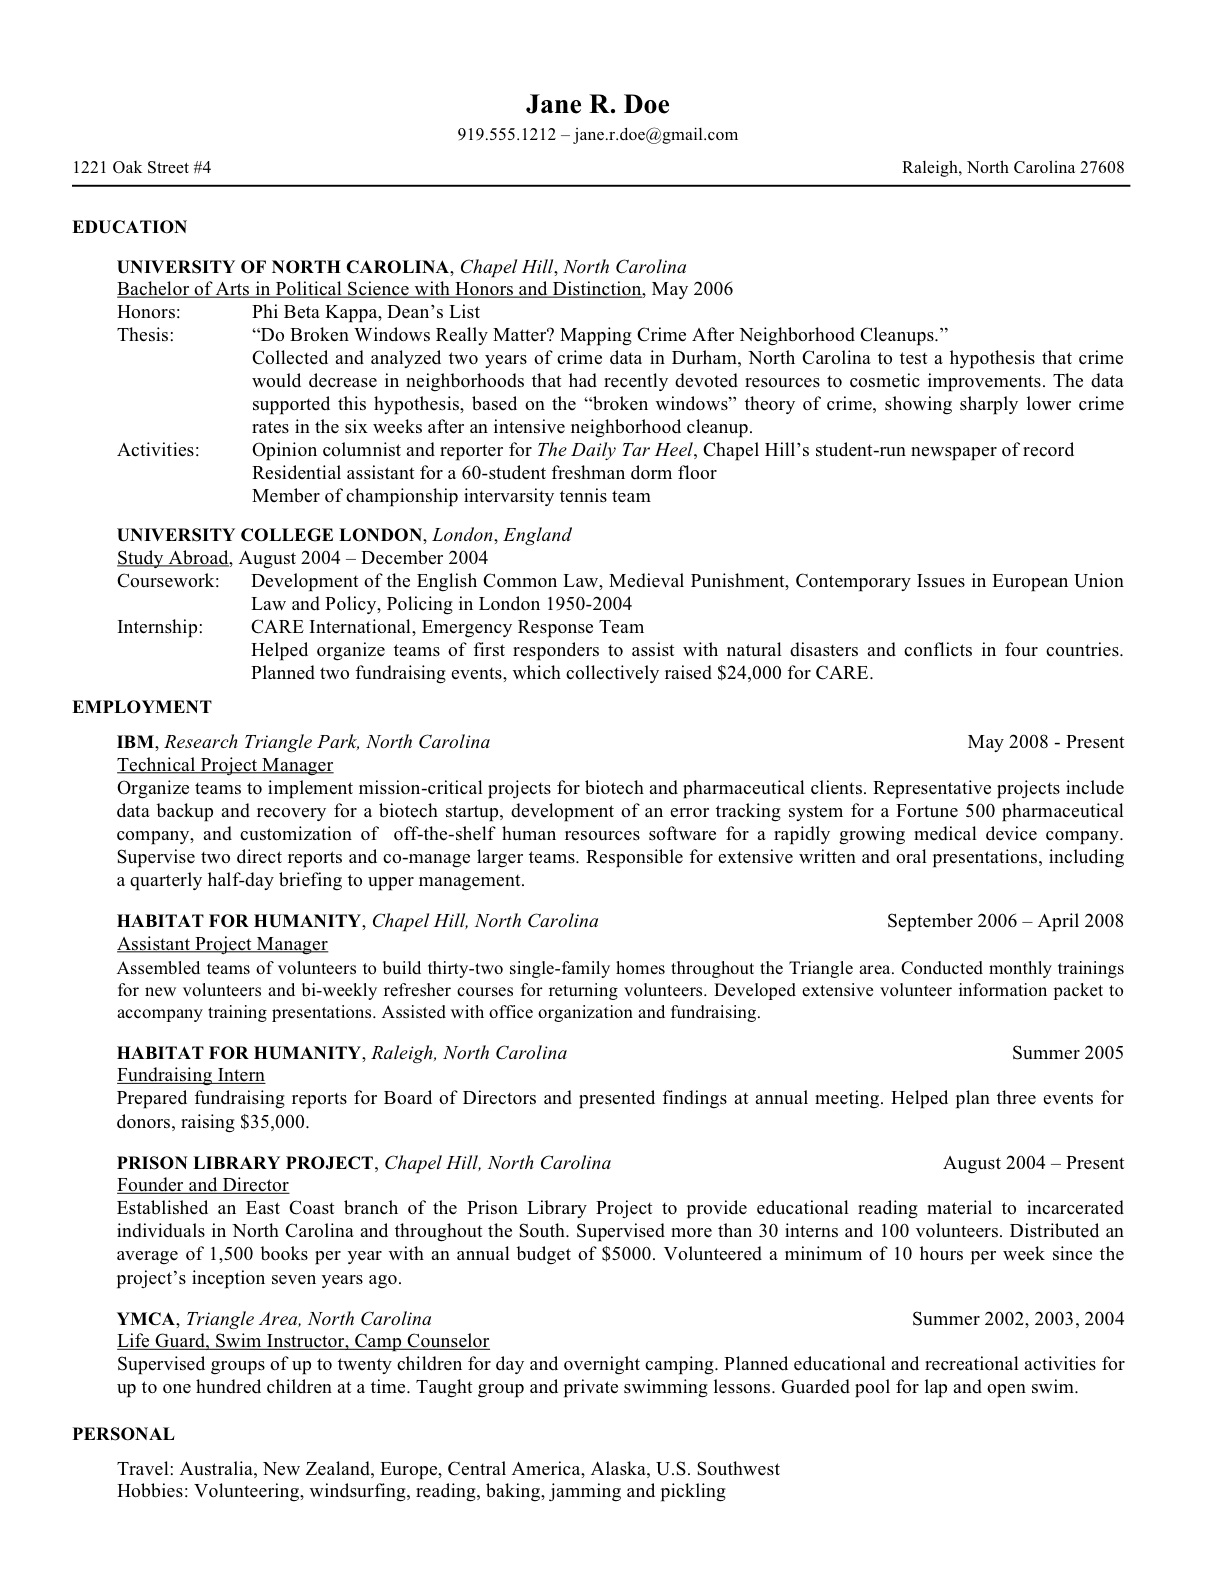 janes revised resume - Sample Educational Resume